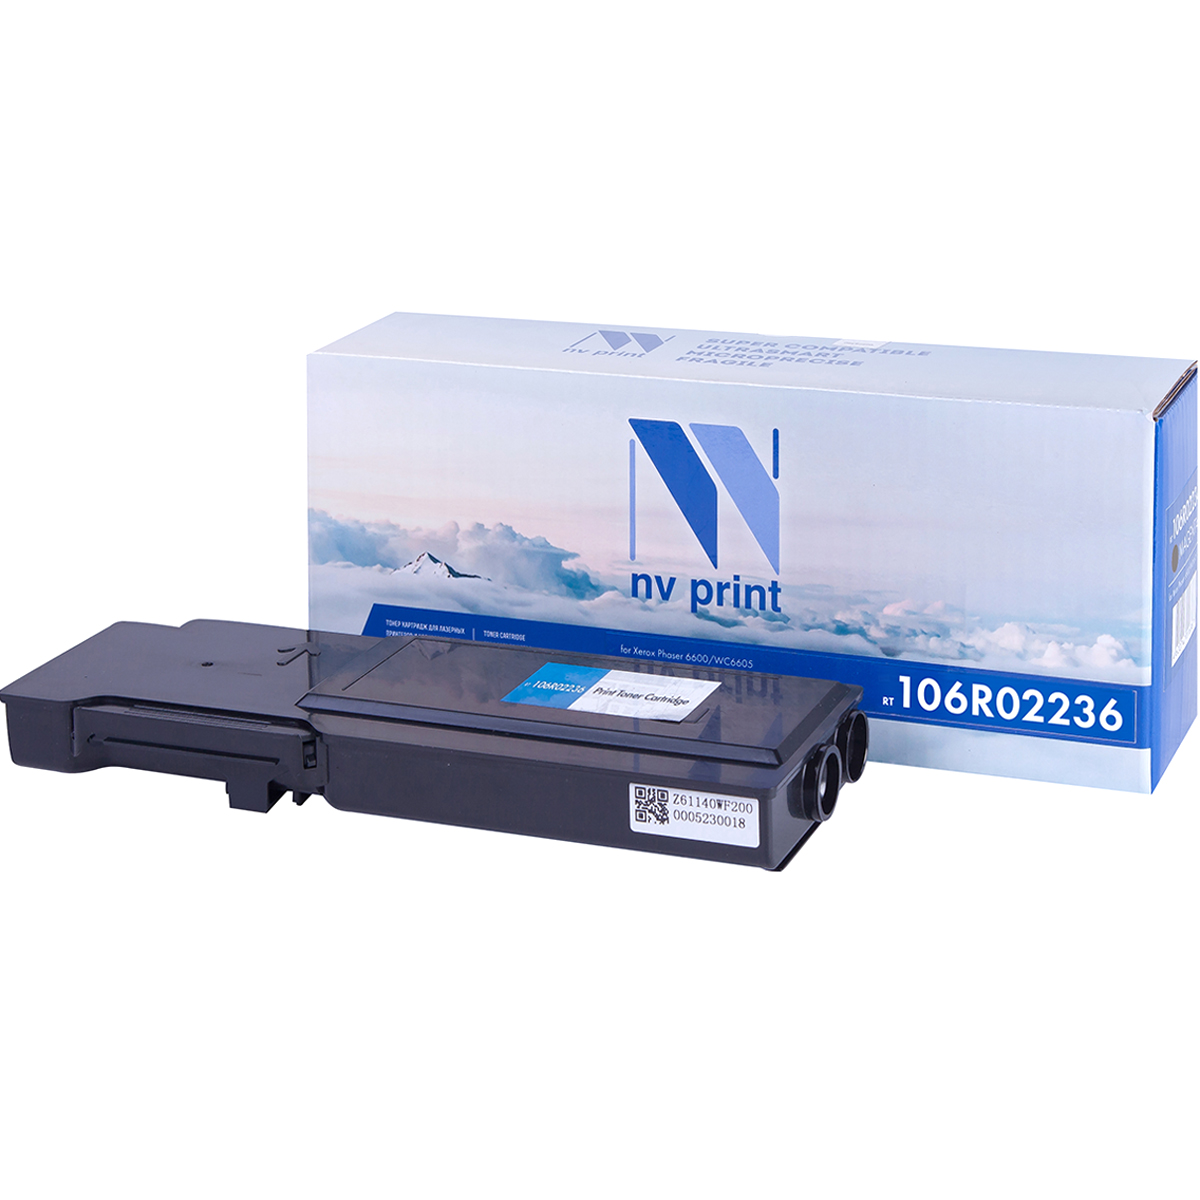 Фото - Картридж NV Print 106R02236 для Xerox Phaser 6600/WC6605 (8000k) картридж nv print 106r02306 для xerox phaser 3320 11000k